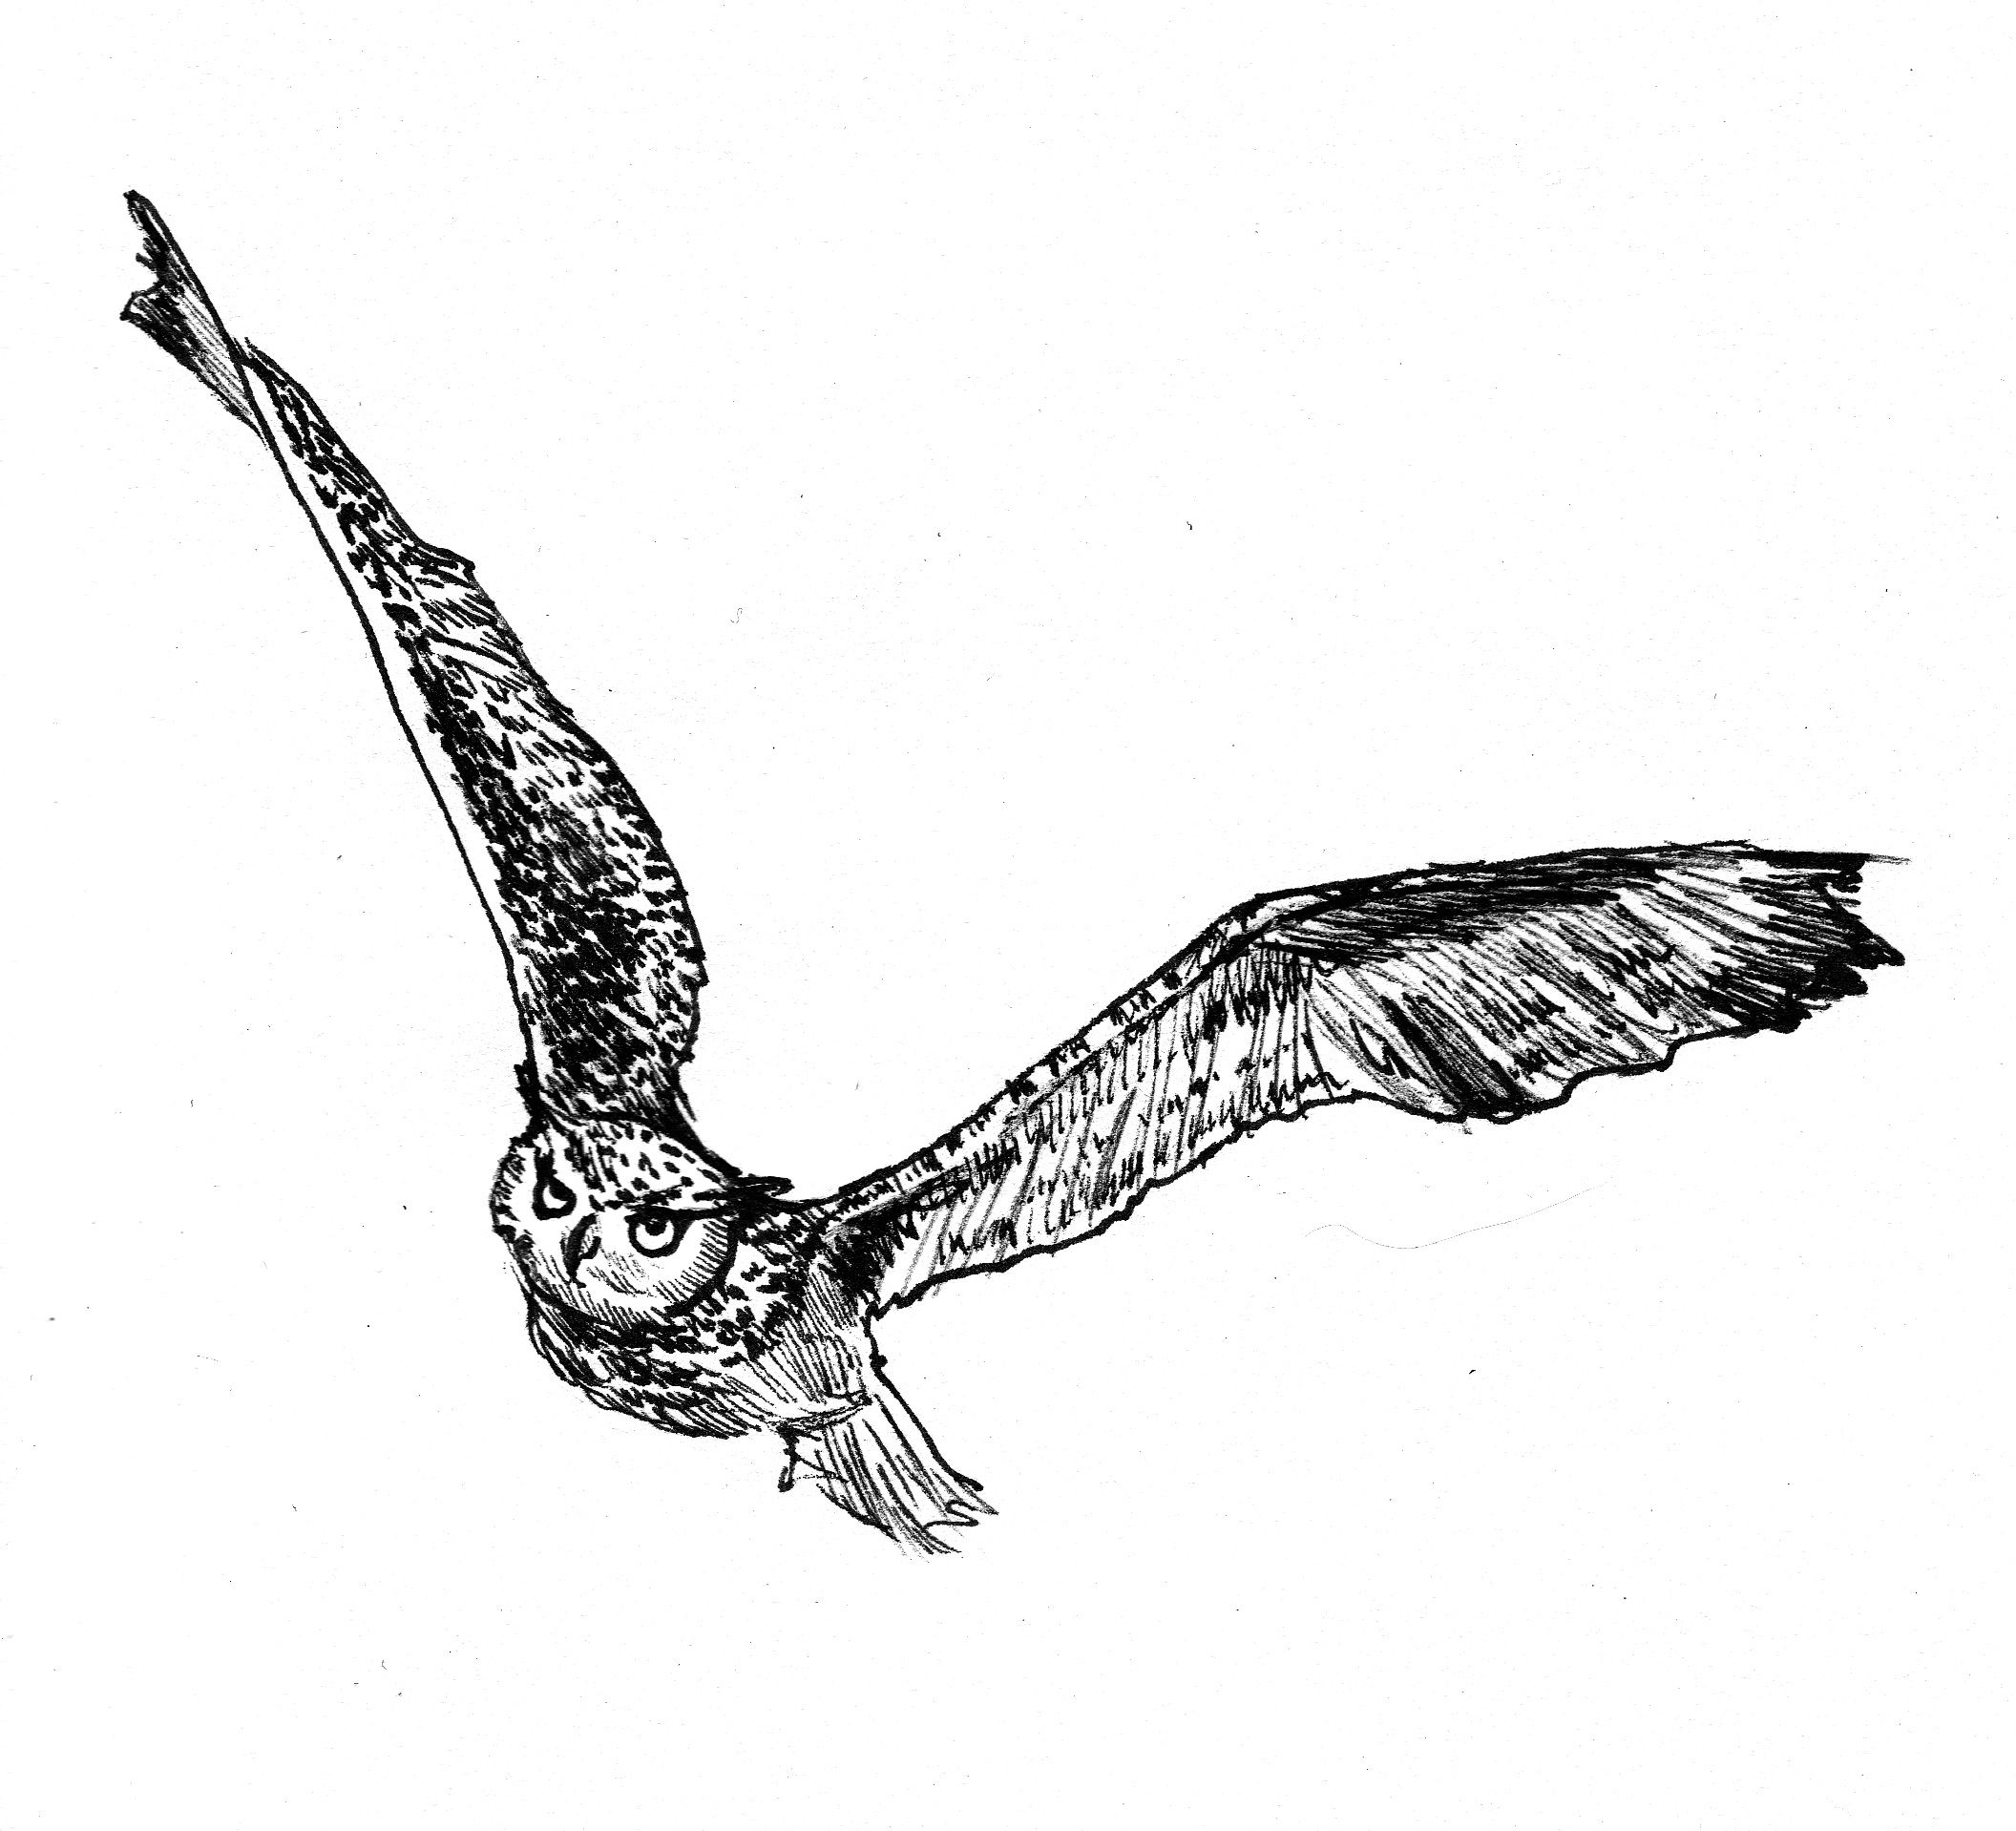 2112x1918 Ehh Kinda Sorta What I Wantbut The Owl Needs To Be Carrying